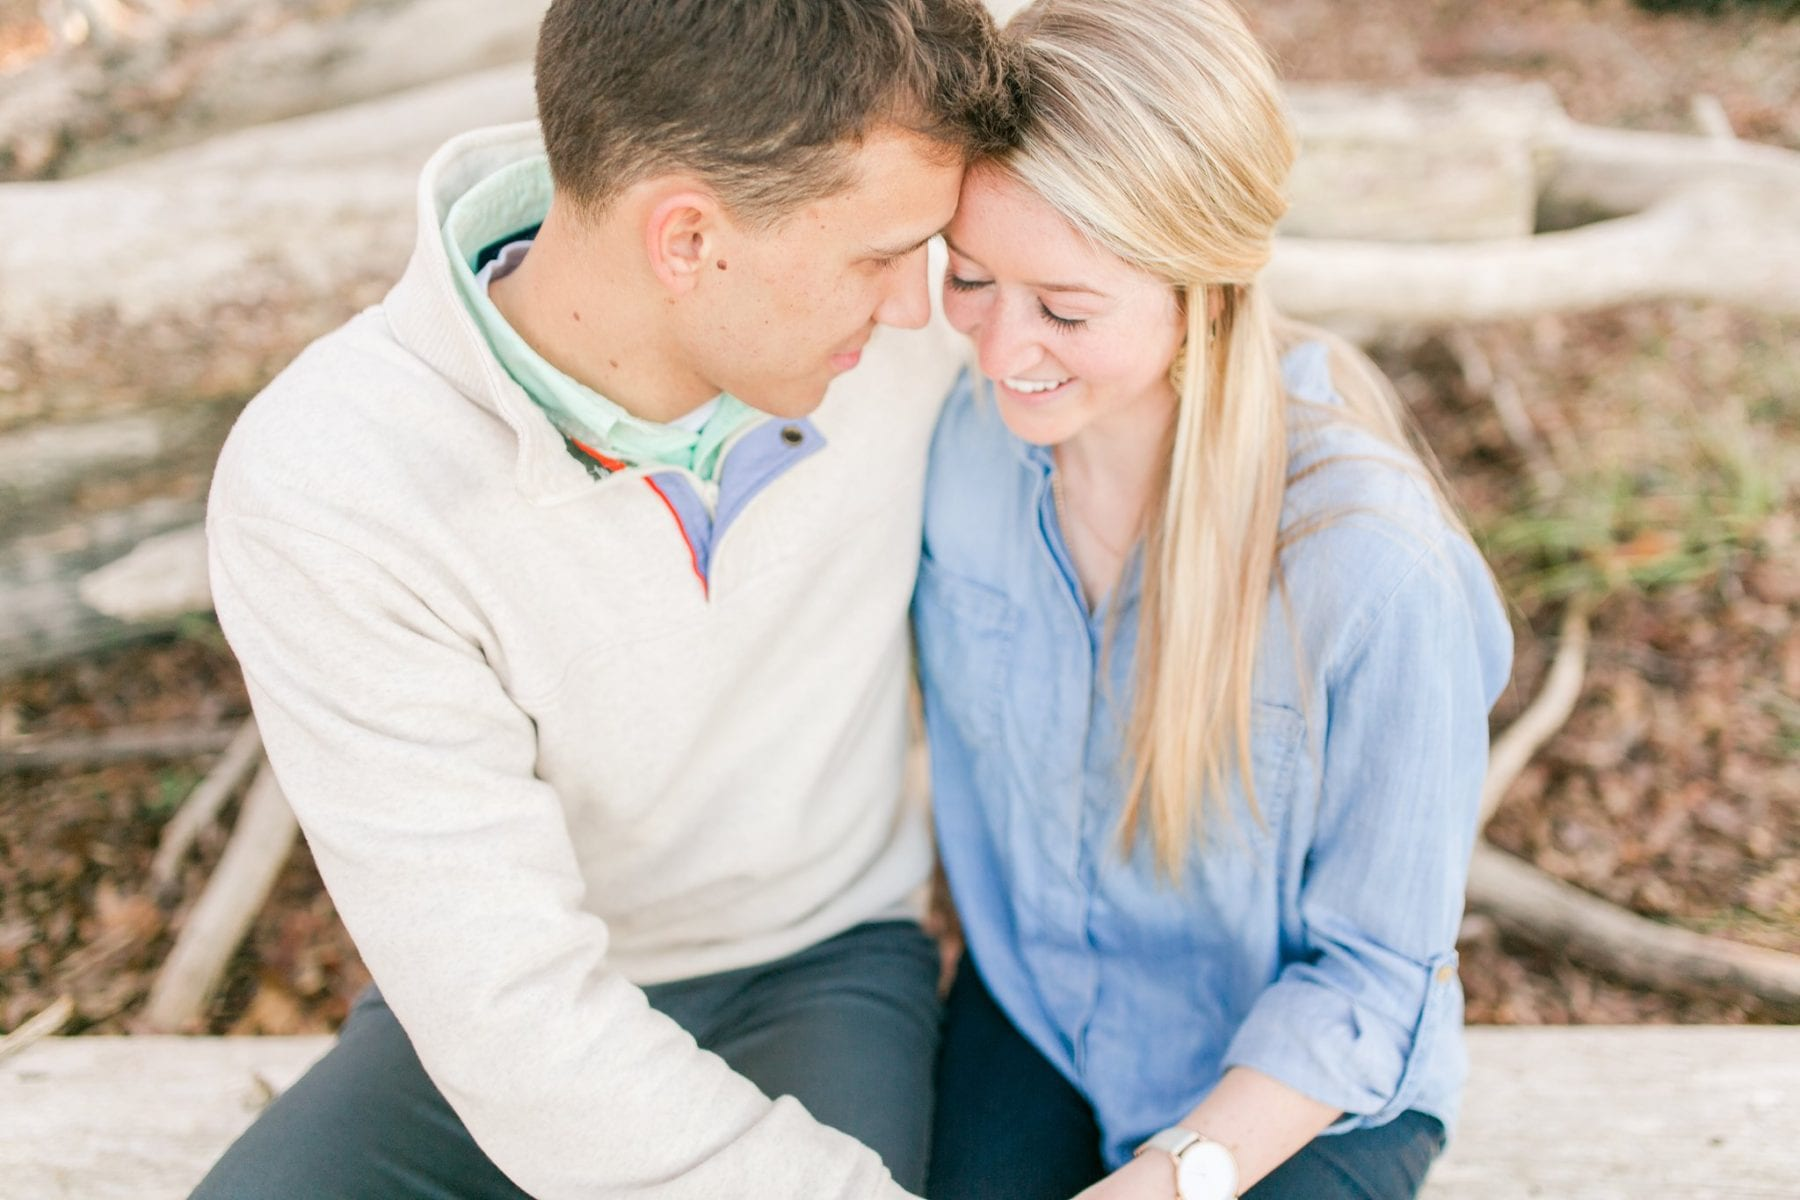 Manassas Battlefield Engagement Session Virginia Wedding Photographer Danielle & Charlie Megan Kelsey Photography-5306.jpg